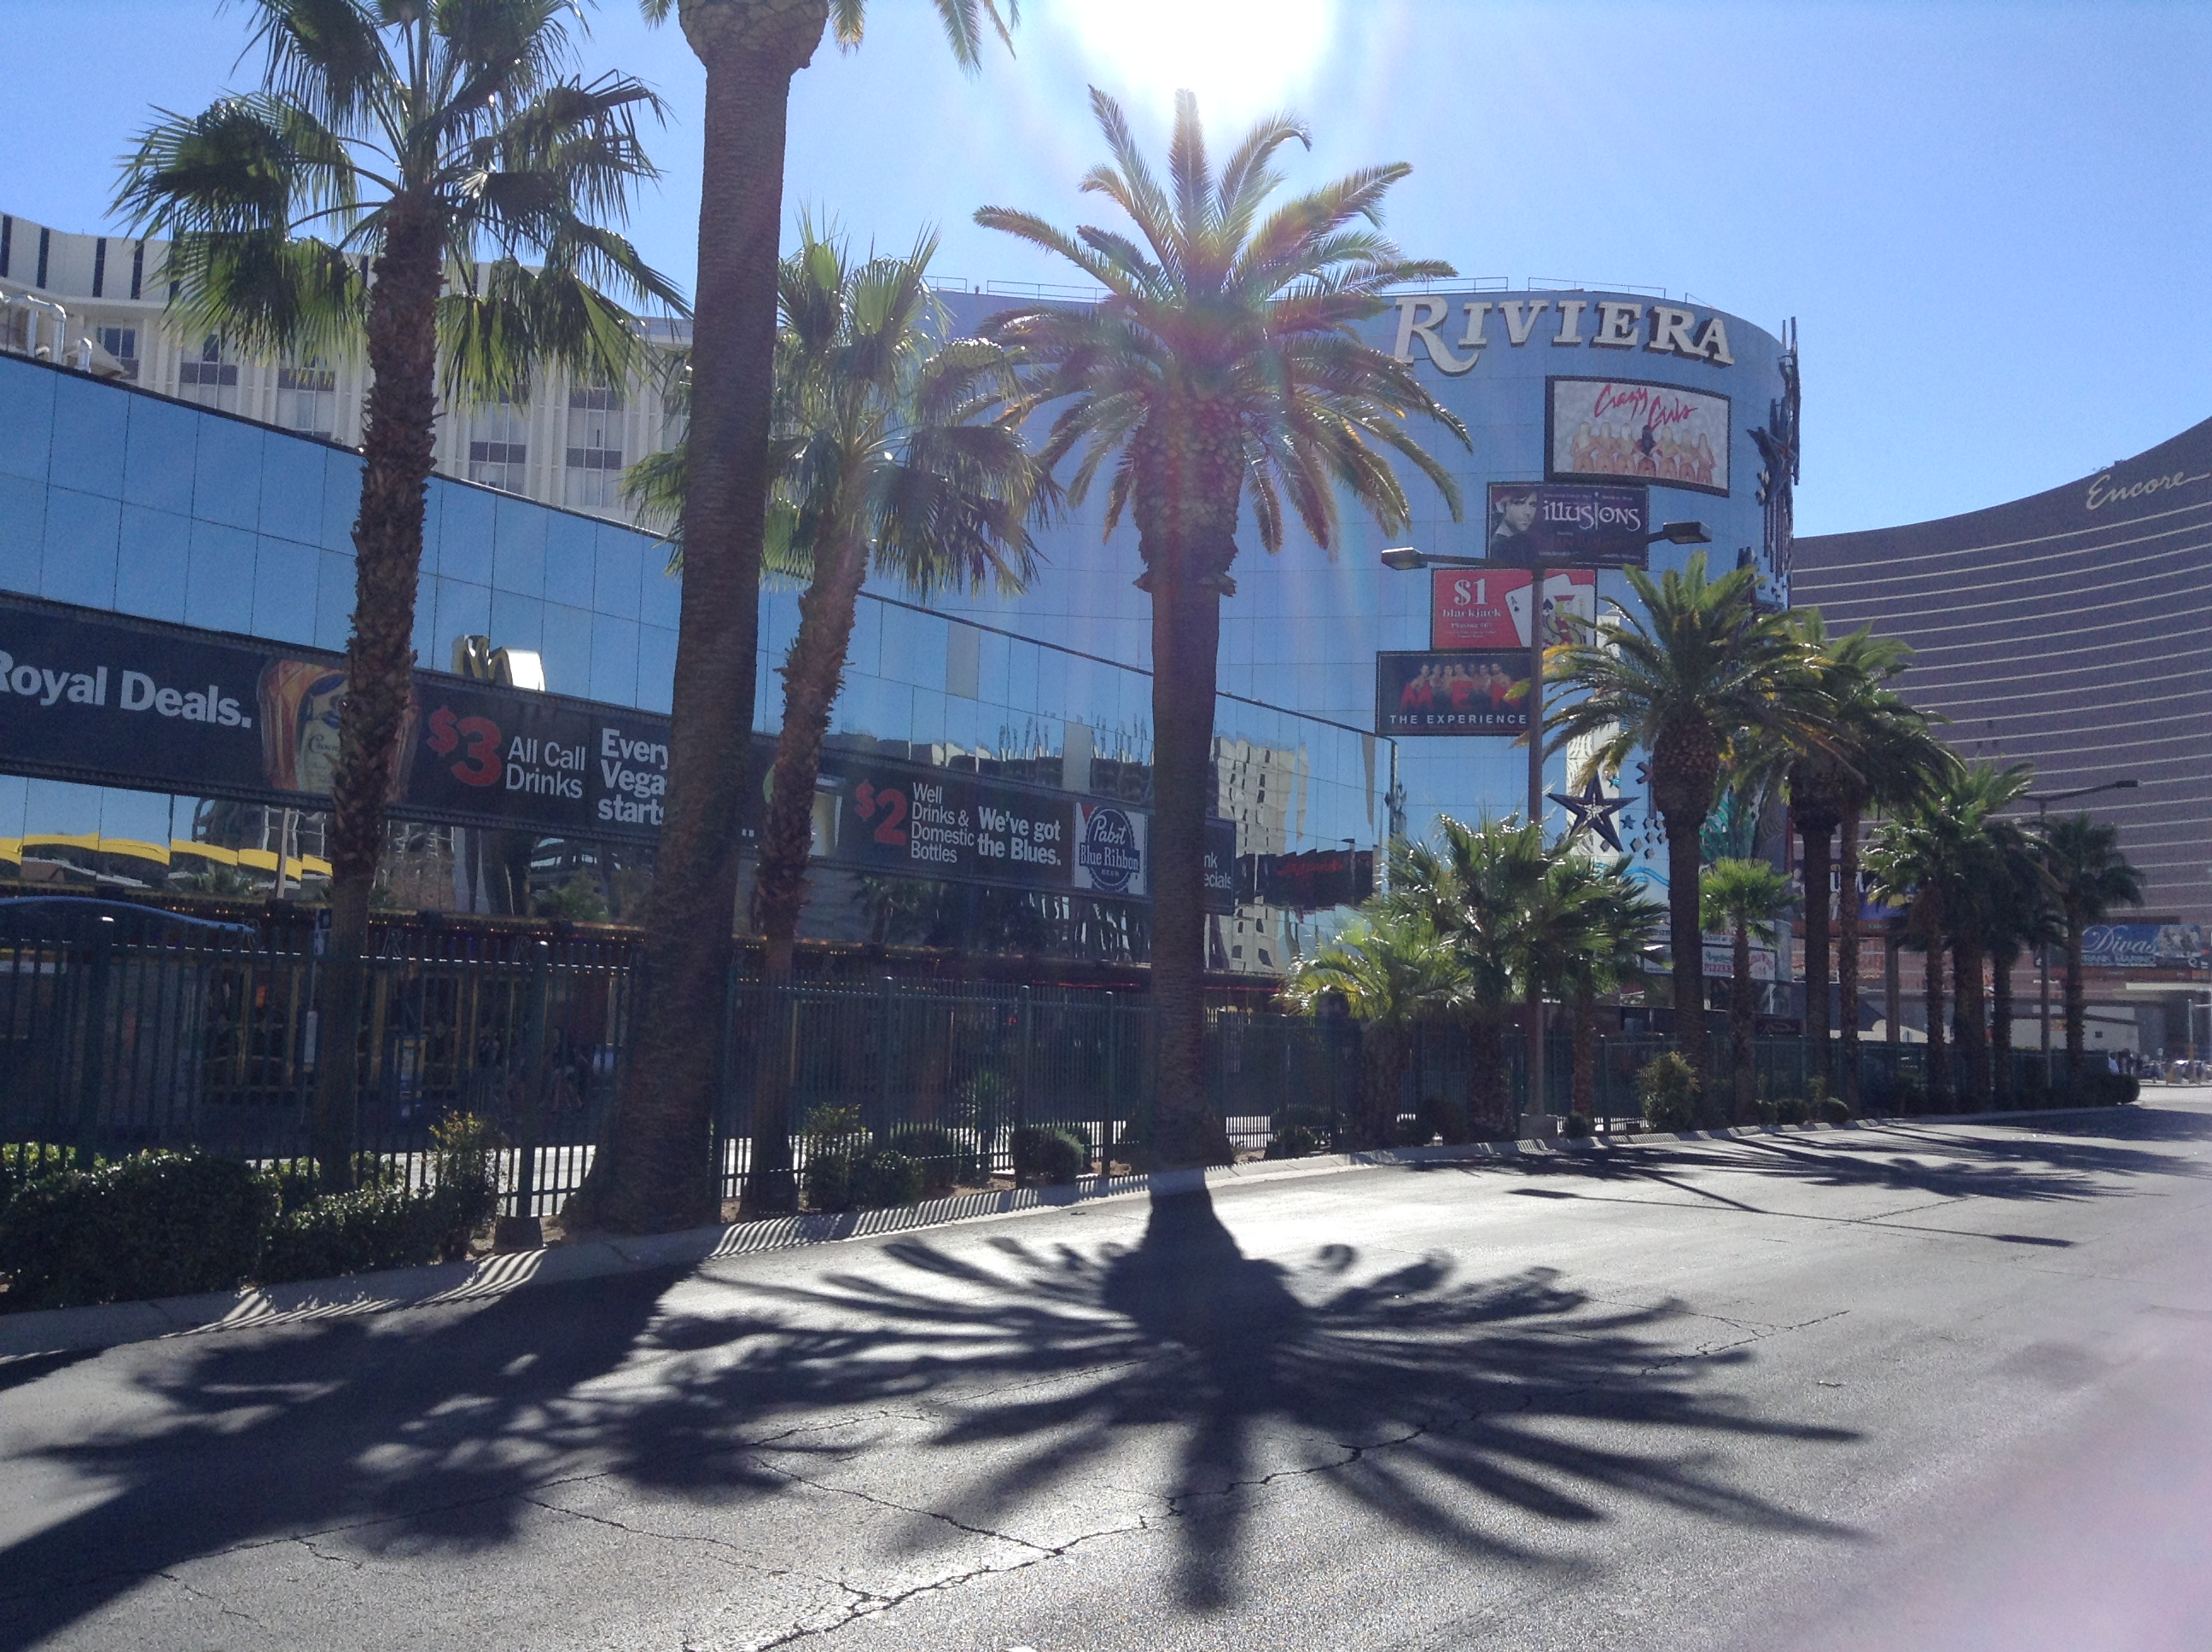 Riviera hotel las vegas liquidation sale is may 4 2015 for Riviera resort las vegas